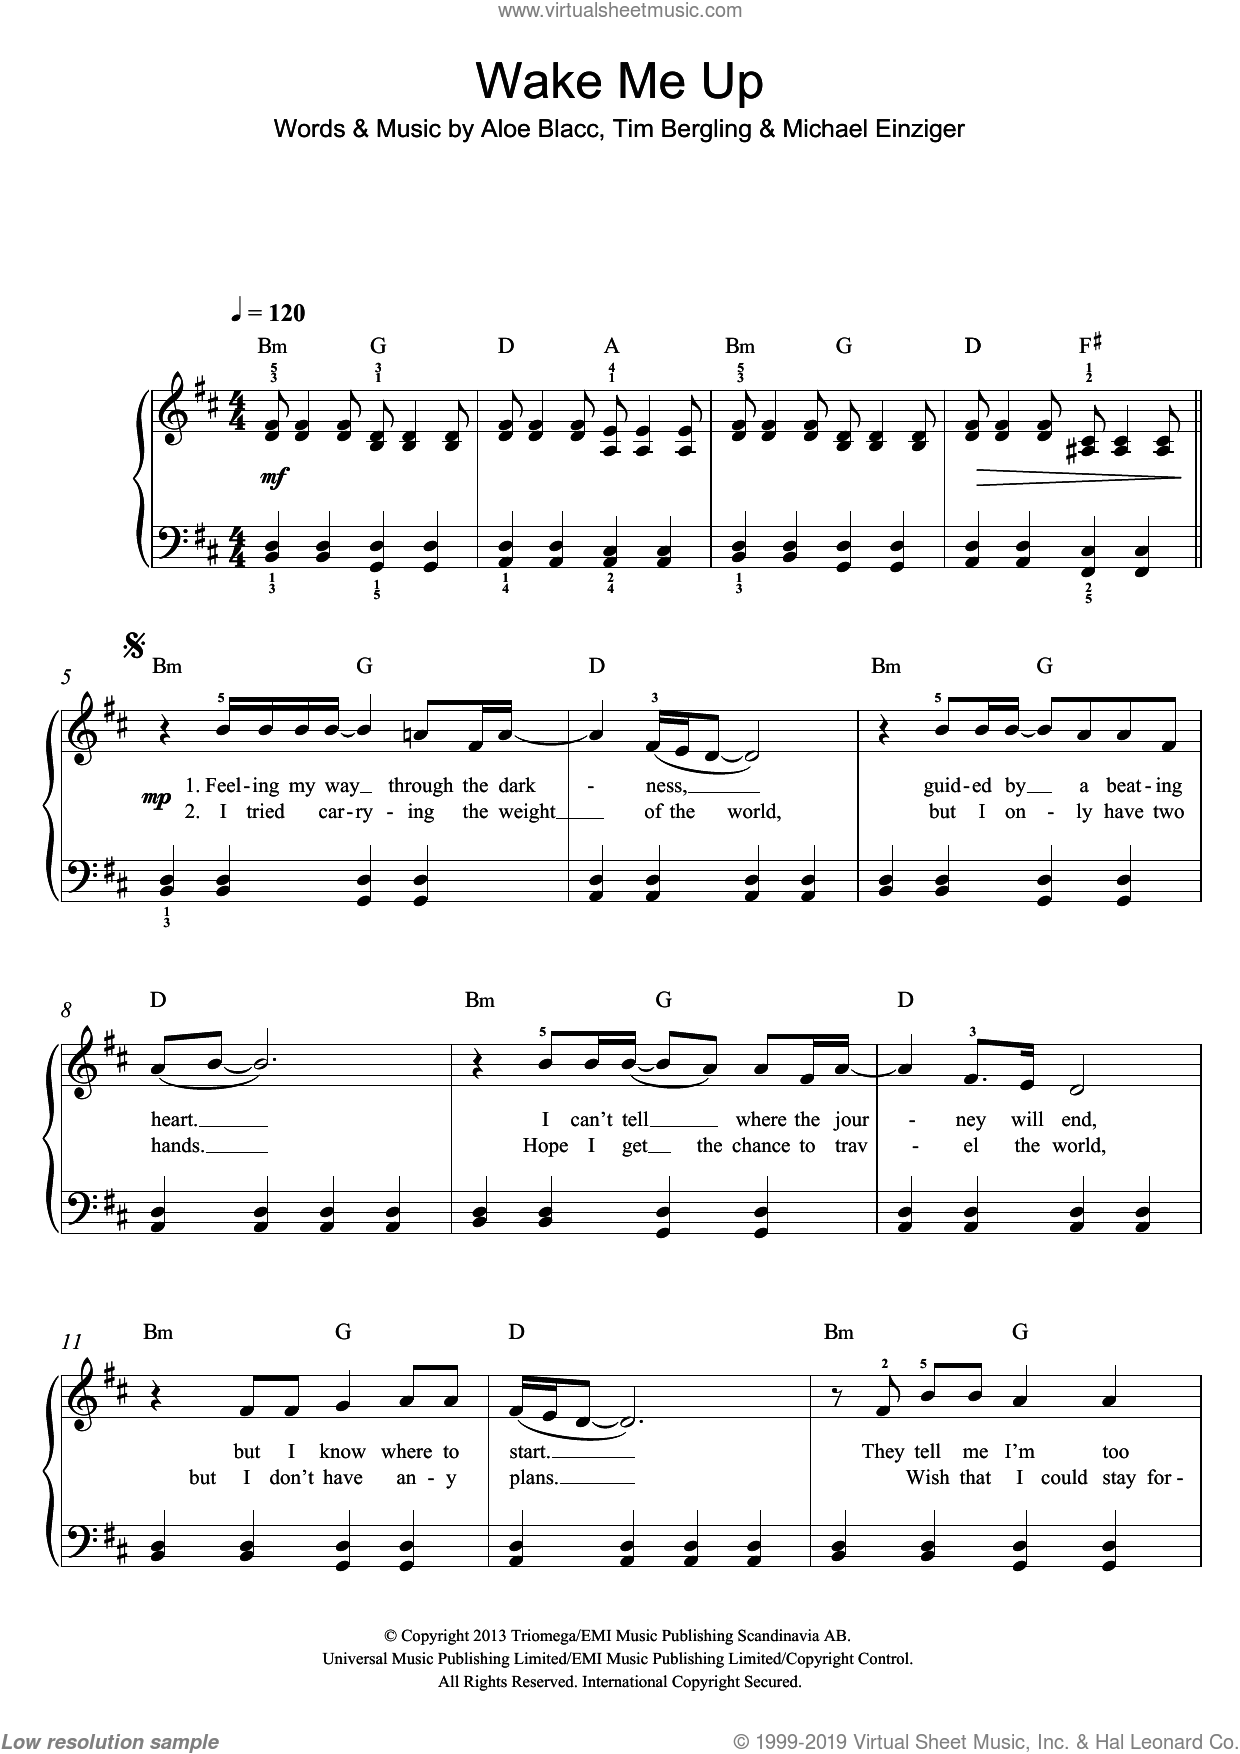 Wake Me Up sheet music for piano solo by Tim Bergling